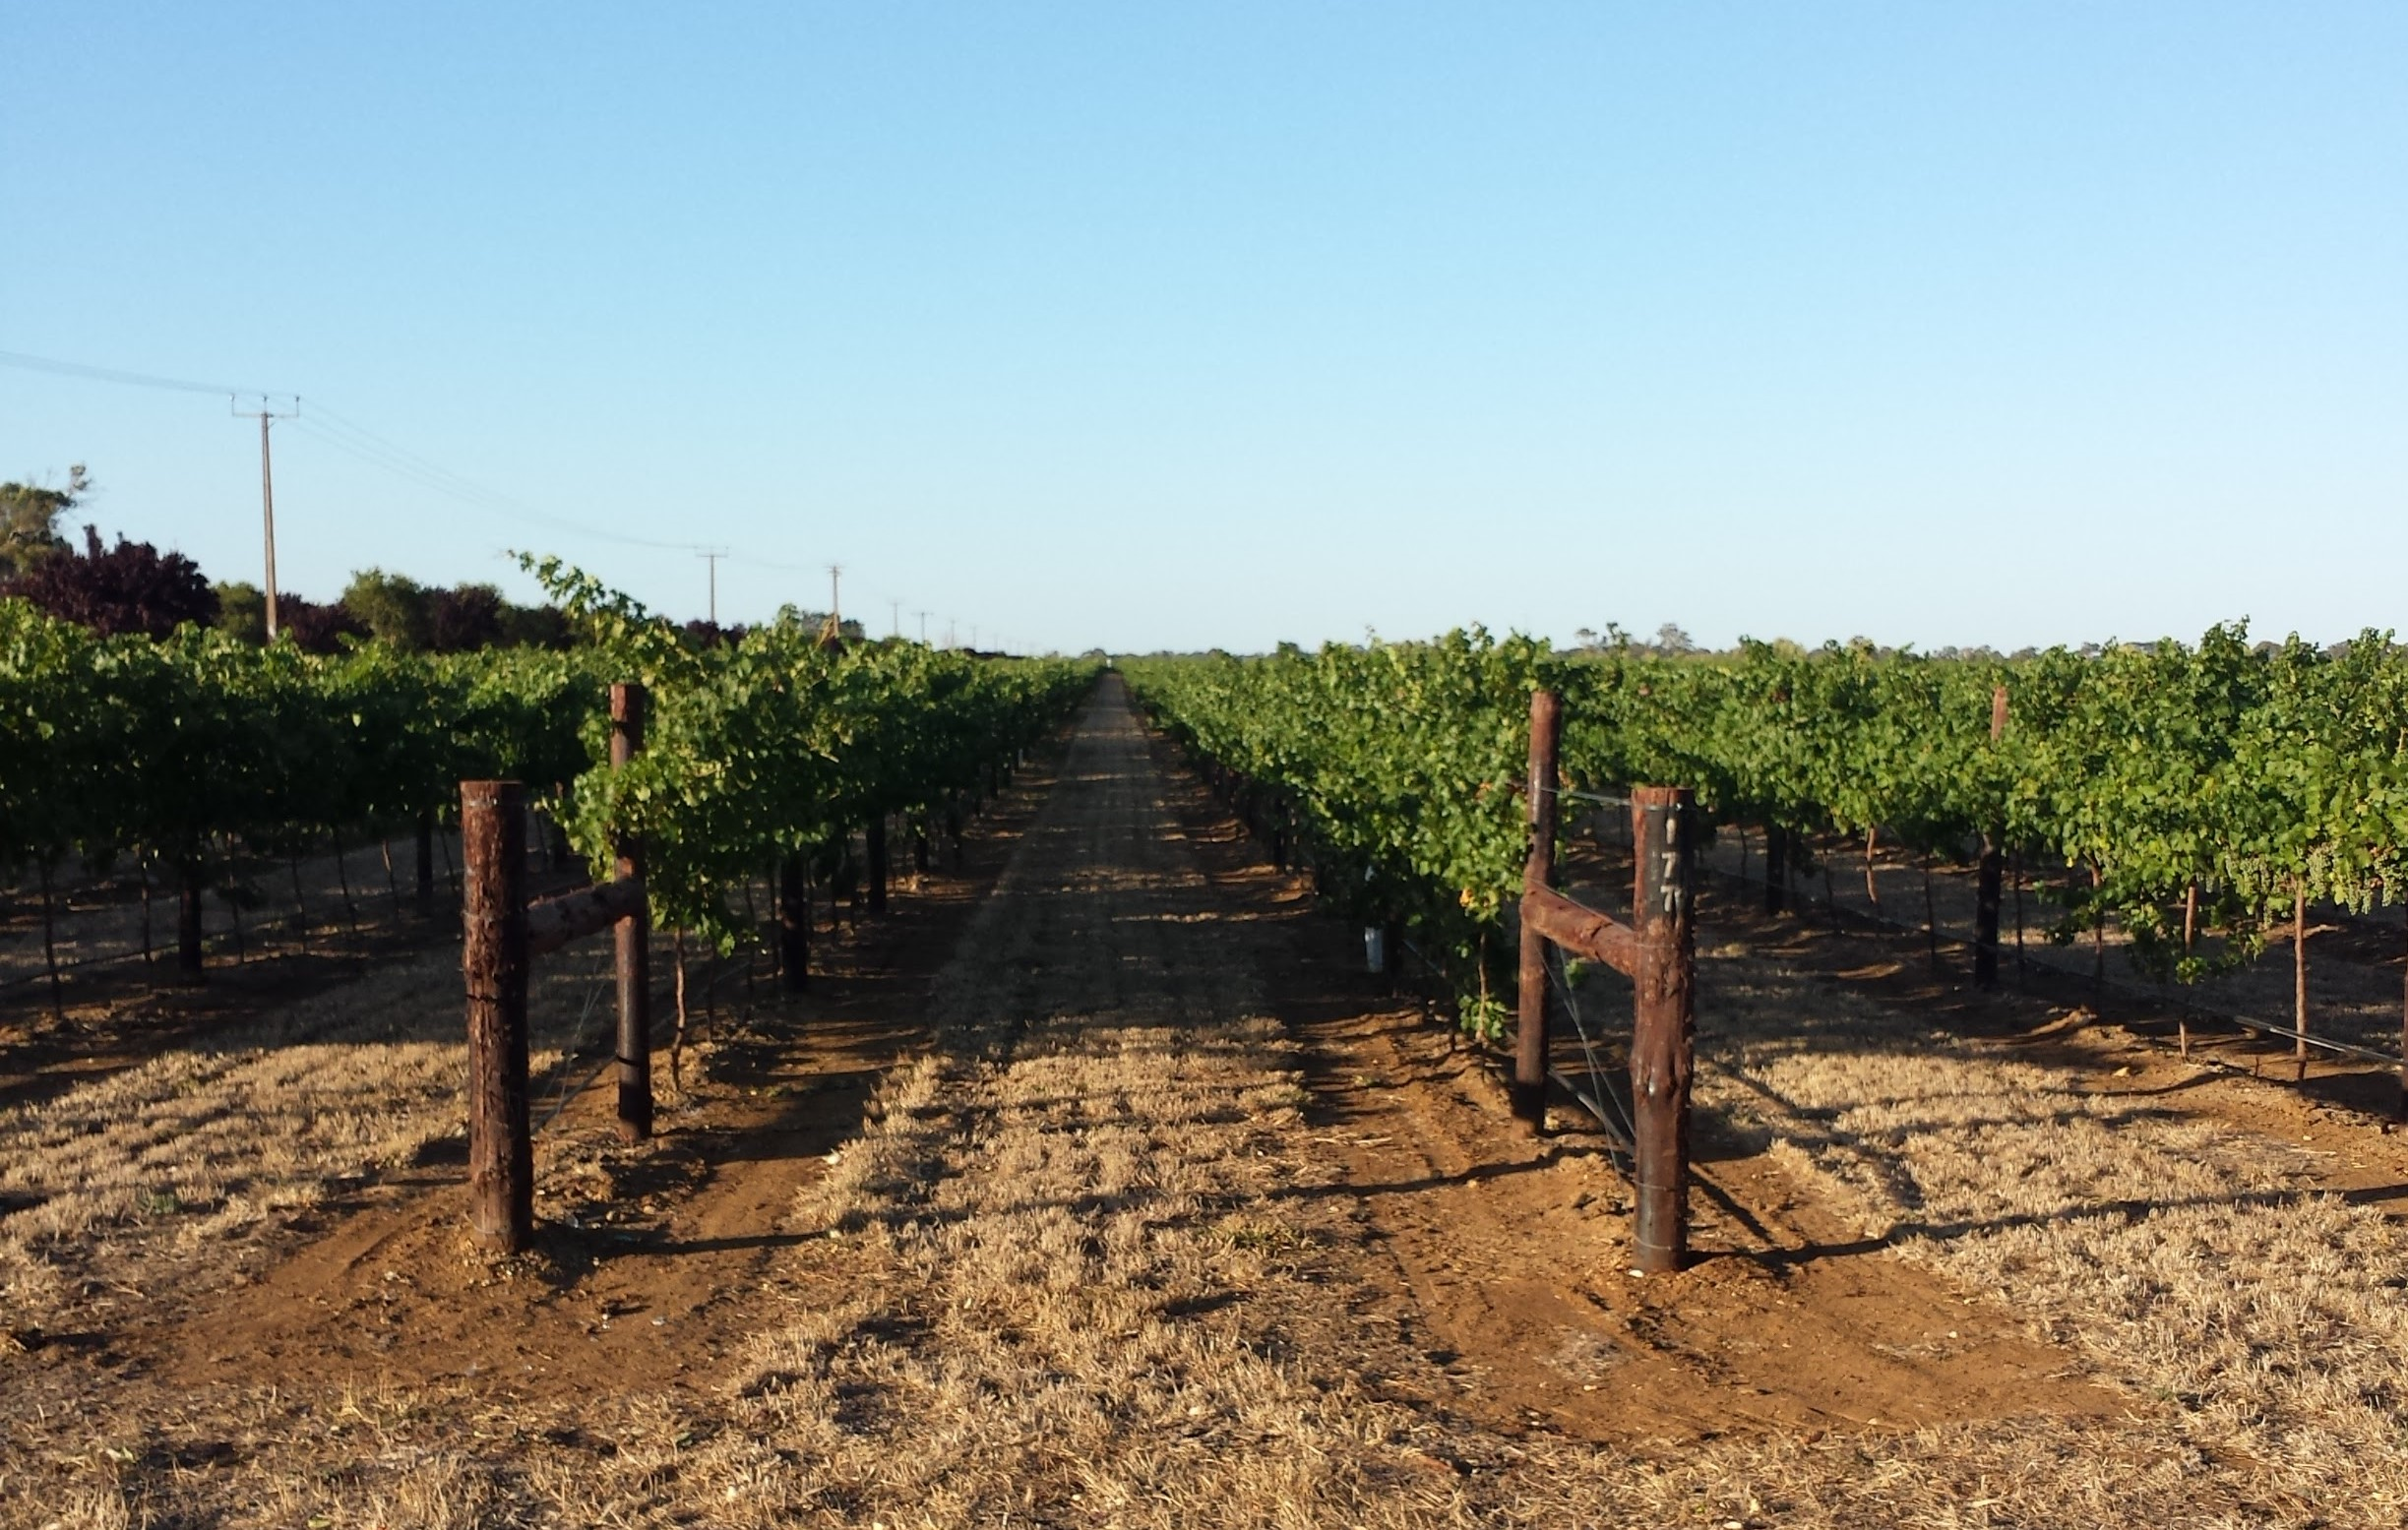 The vines lapping up the sun